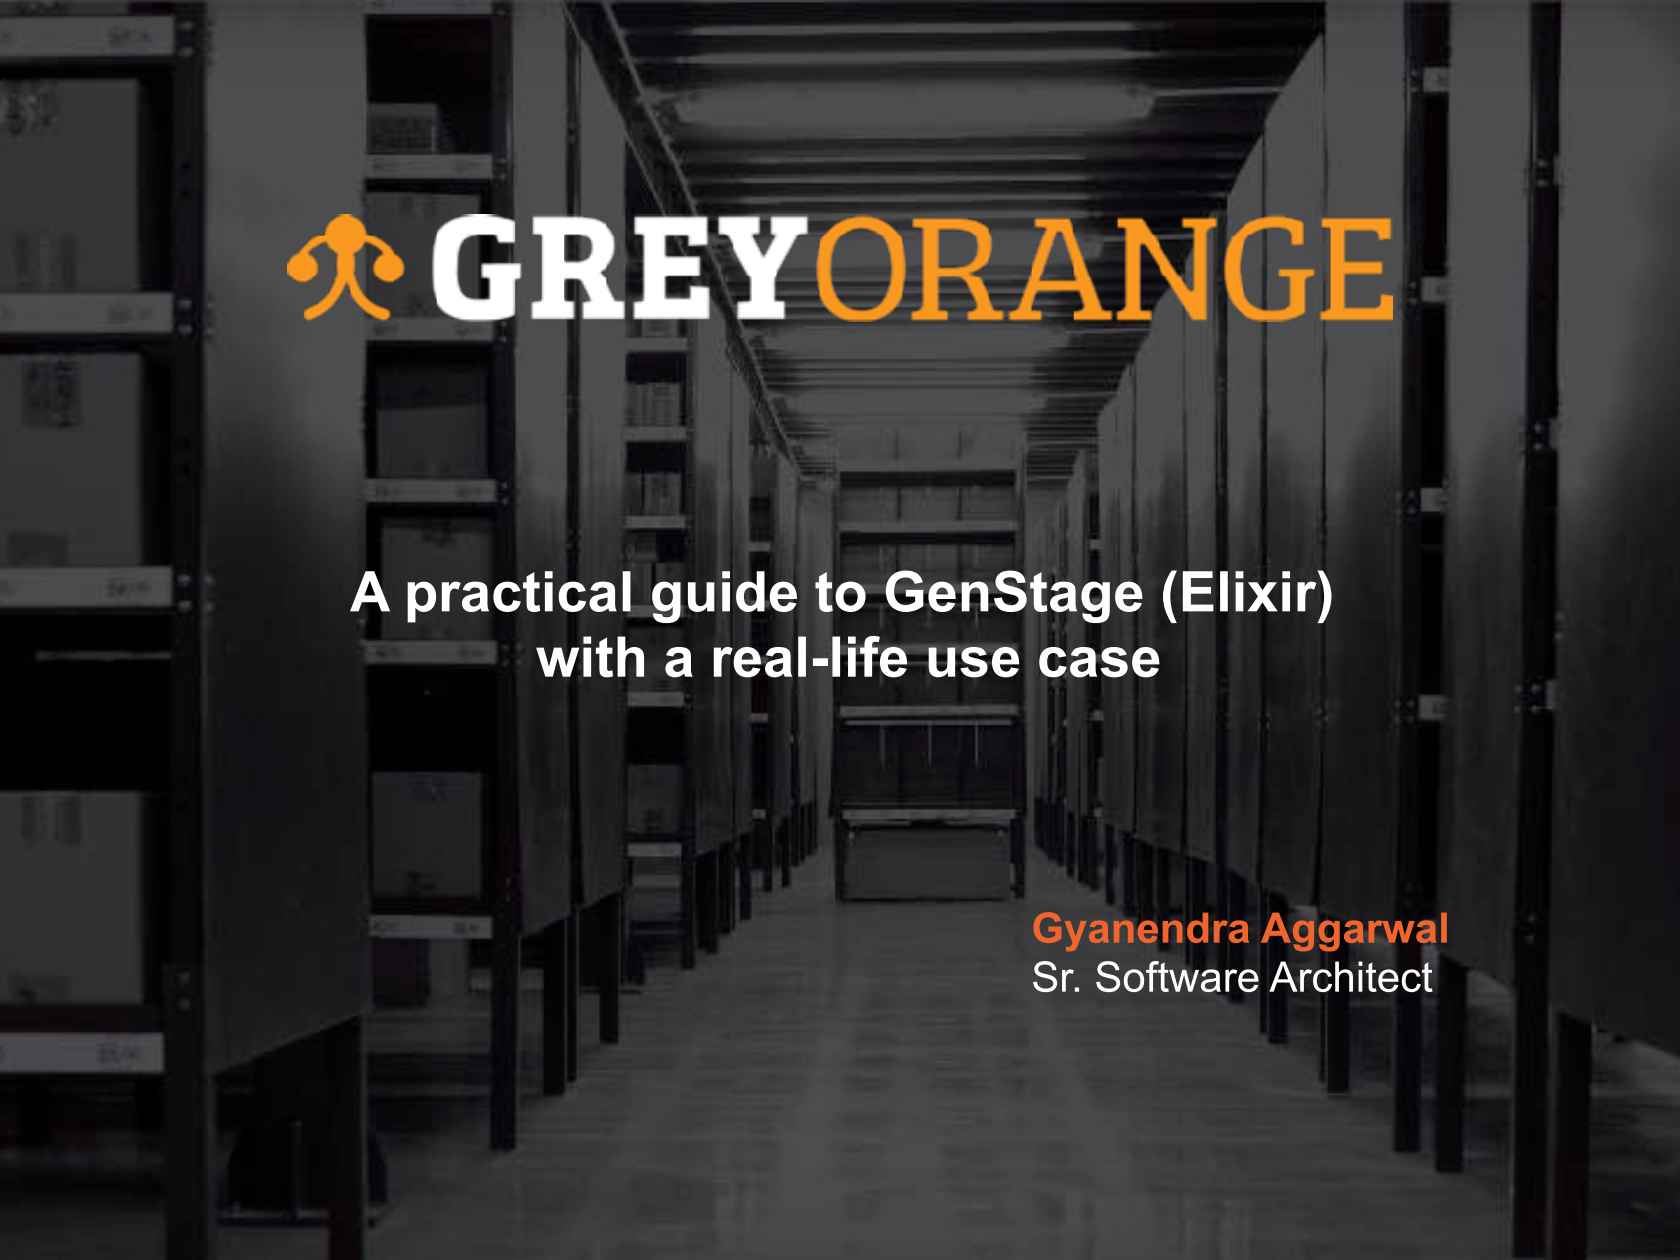 A Practical Guide to GenStage with a Real-Life Use Case